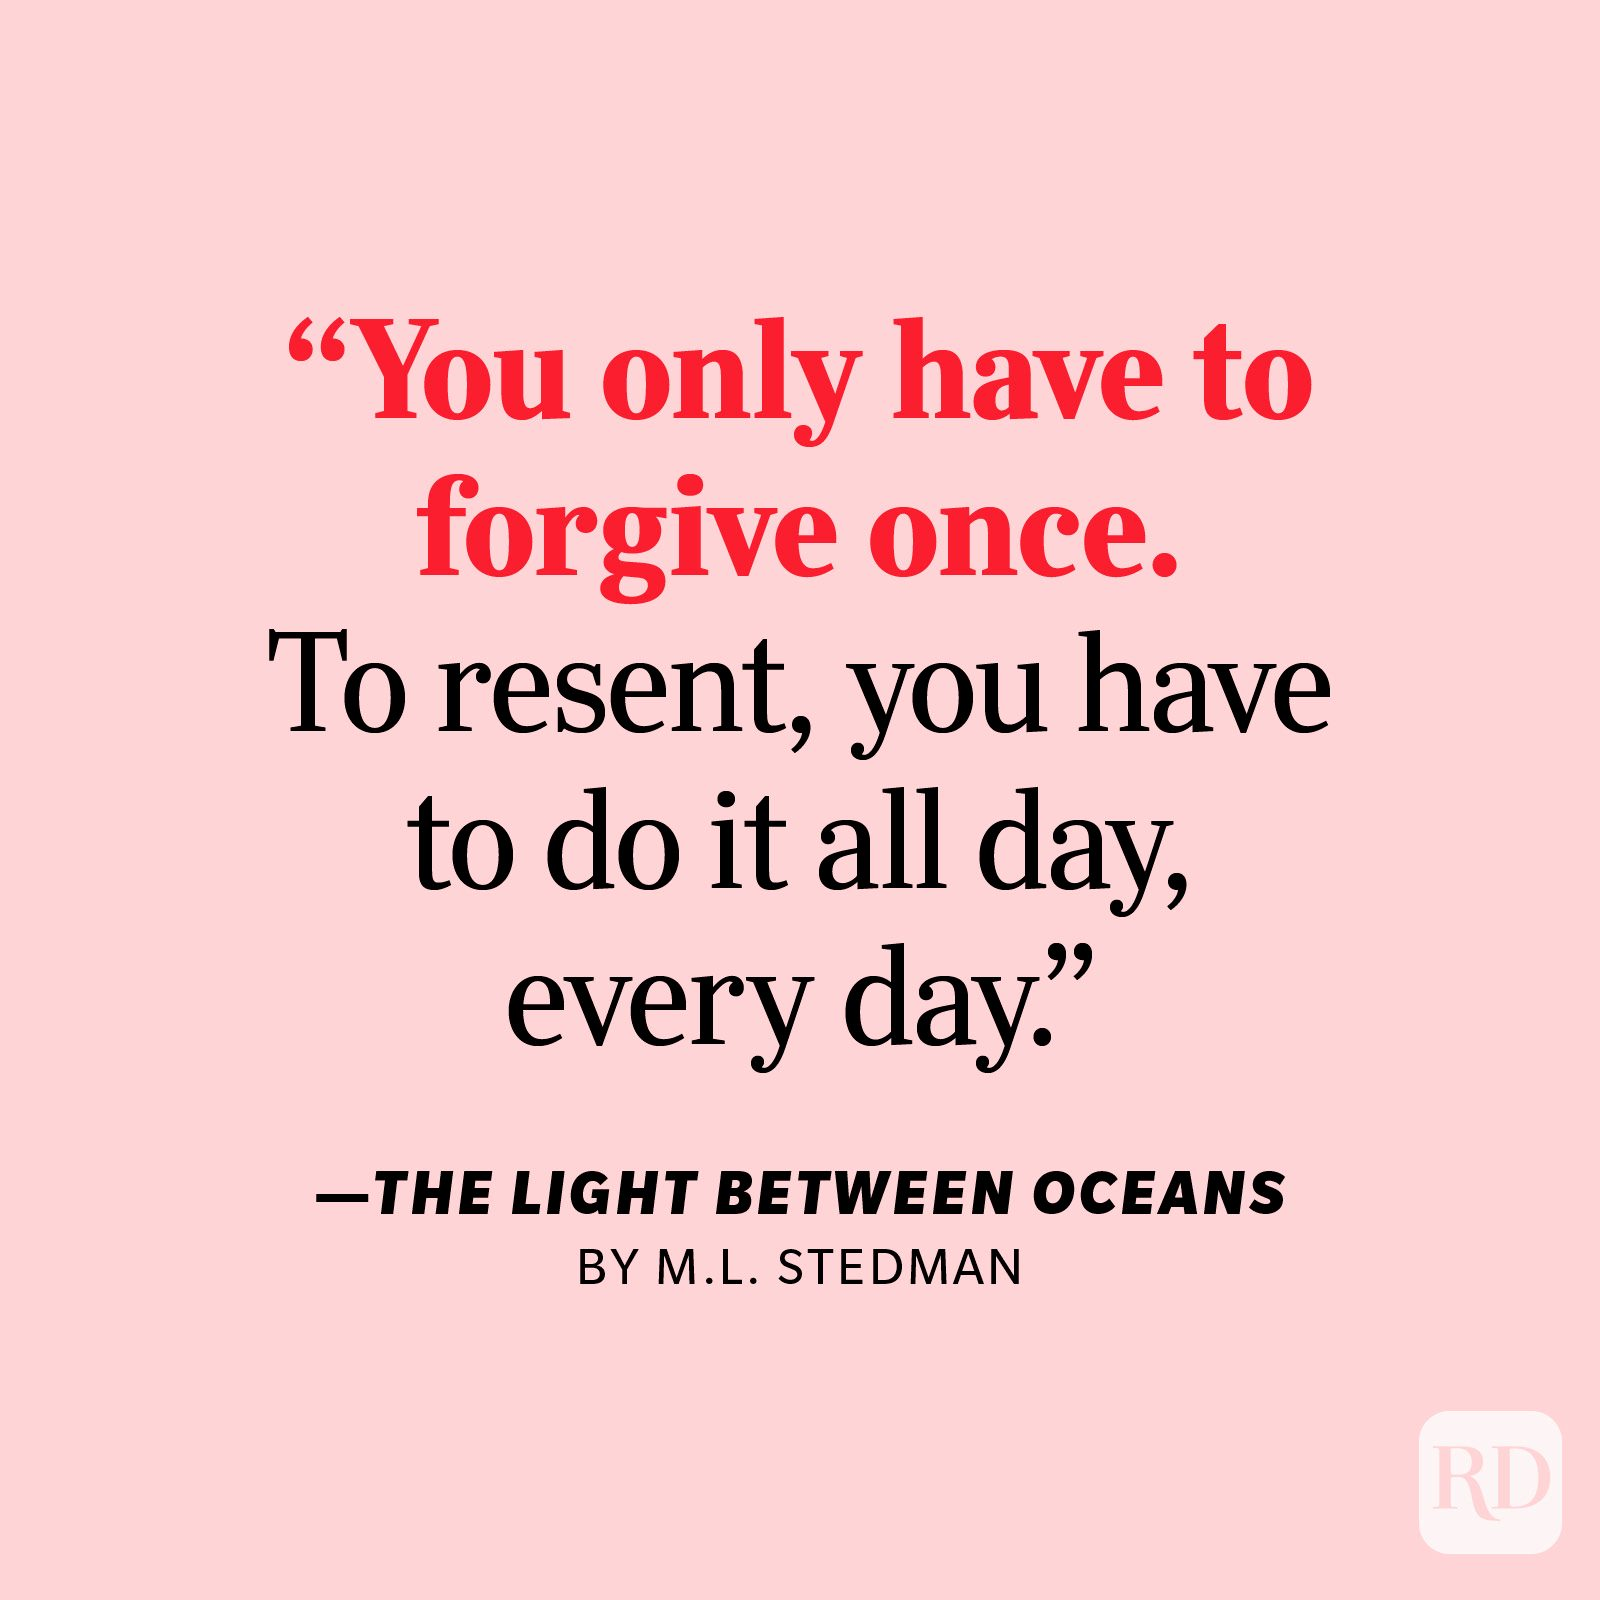 """The Light Between Oceans by M.L. Stedman     """"You only have to forgive once. To resent, you have to do it all day, every day."""""""